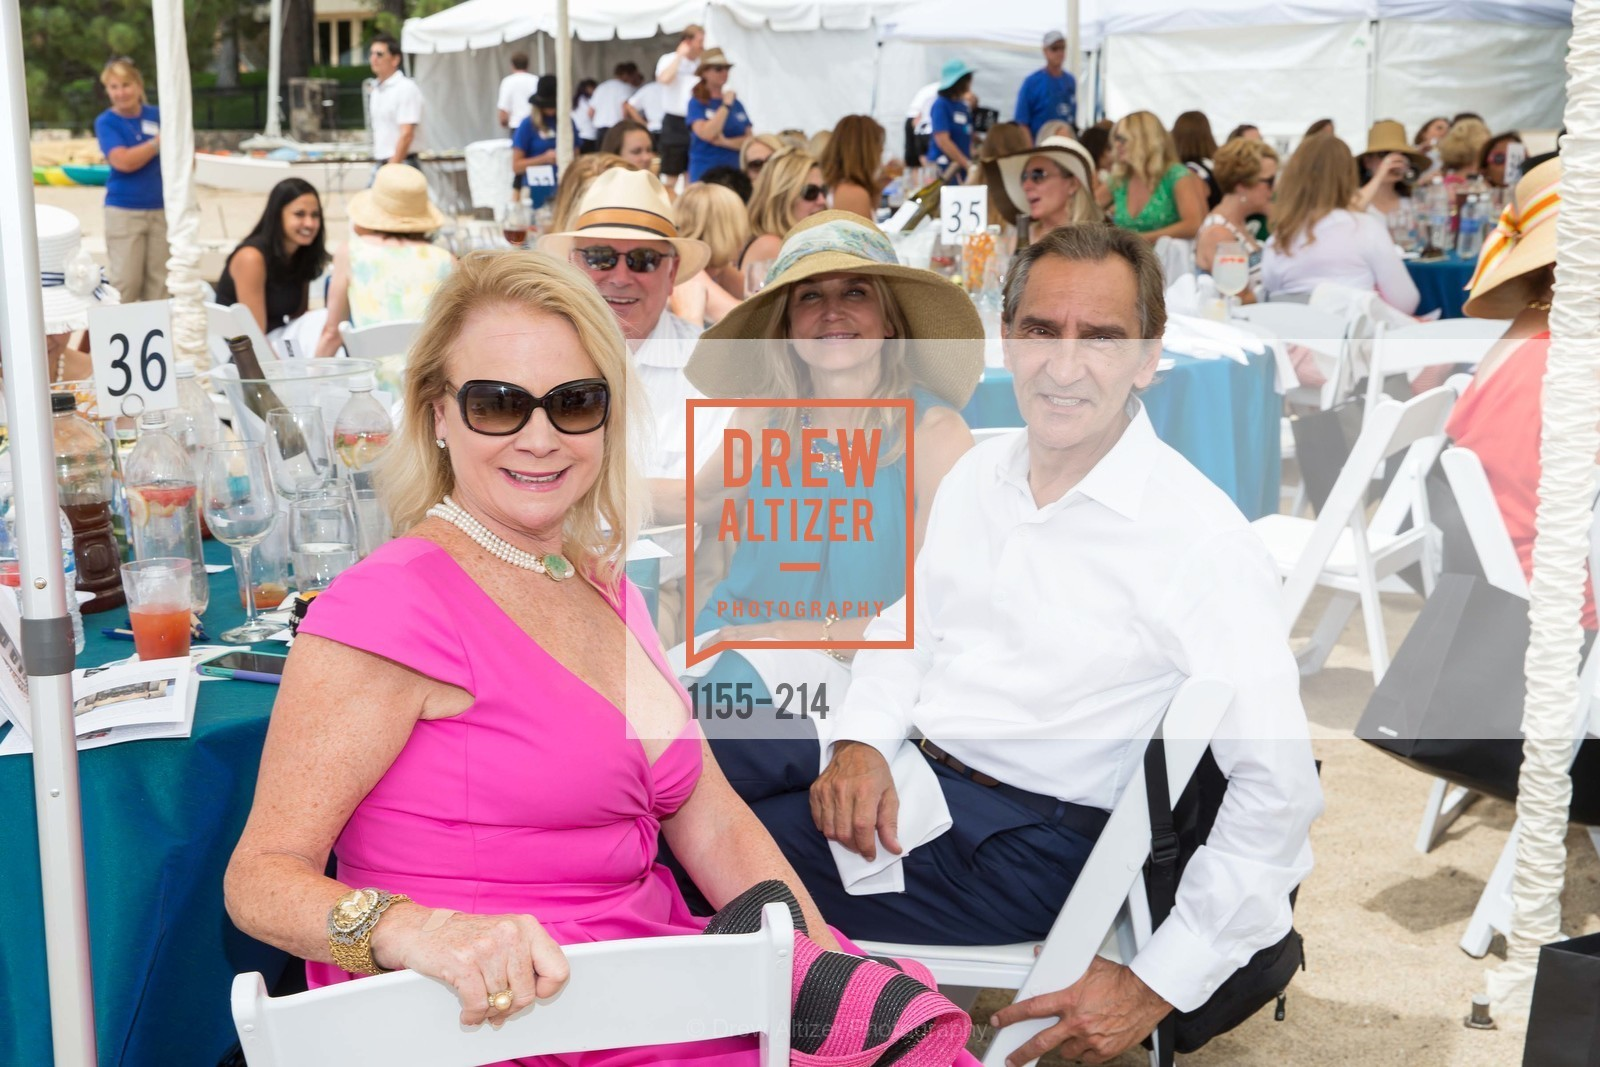 Claire Kostic, Mark Kostic, Saks Fifth Avenue and The League to Save Lake Tahoe Present Fashion on the Lake, Private Residence, August 1st, 2015,Drew Altizer, Drew Altizer Photography, full-service agency, private events, San Francisco photographer, photographer california